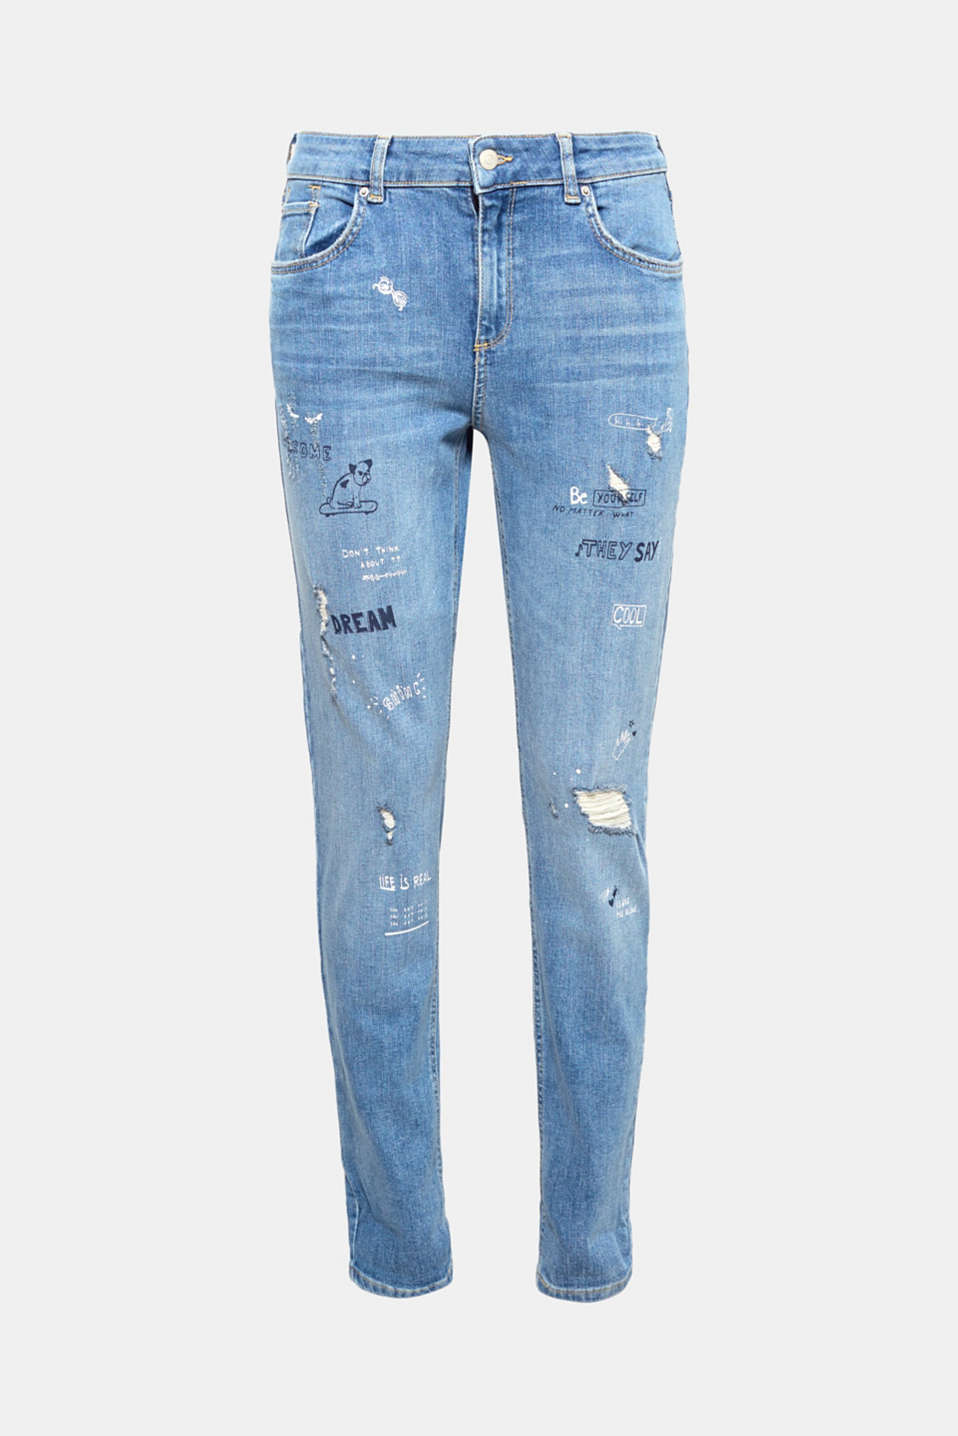 There's lots going on with these jeans: statement prints and vintage effects create an exciting trendy look!